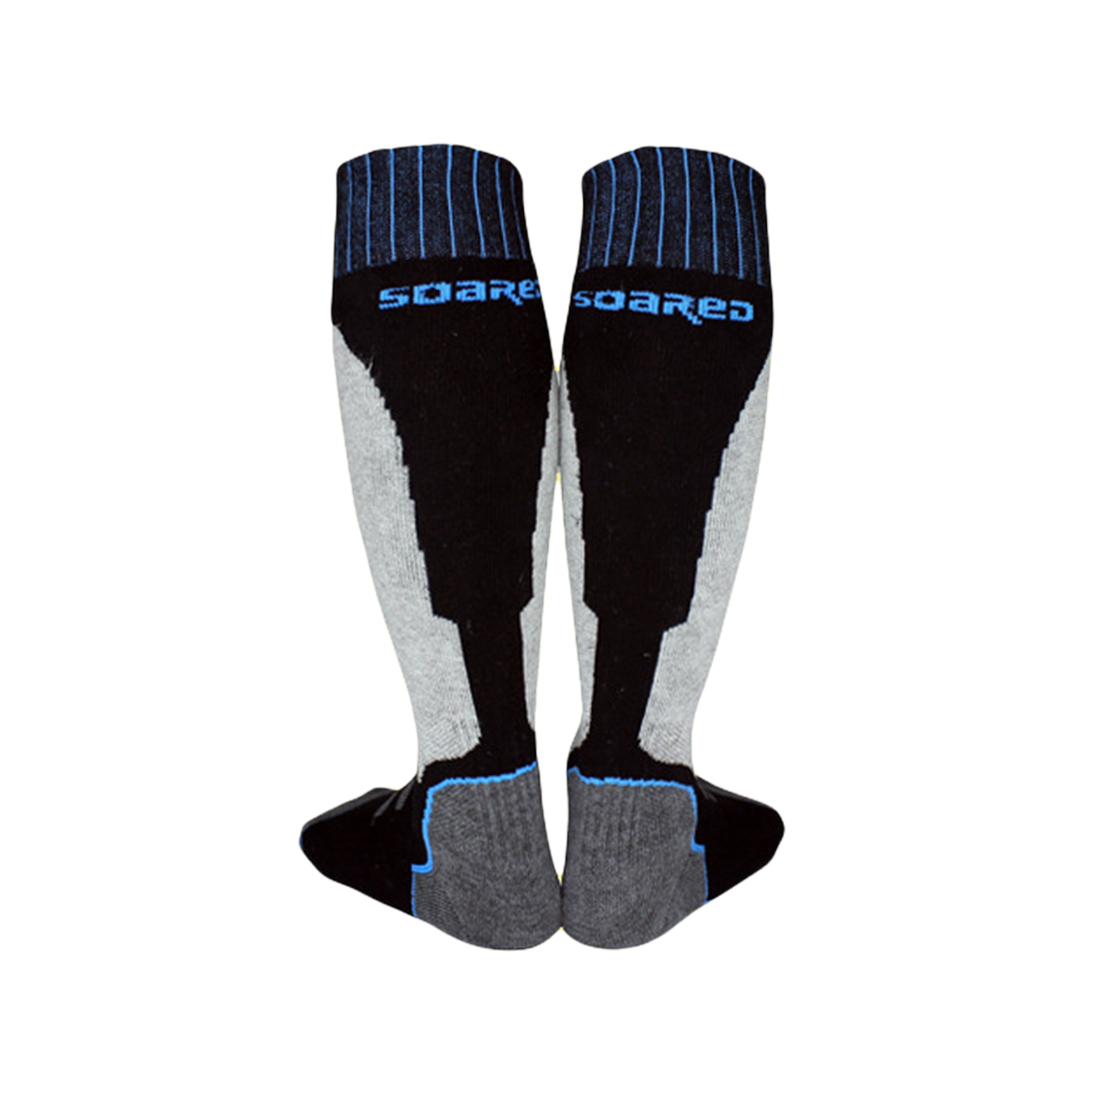 Hot Winter Warm Men Thermal Long Socks Thick Cotton Sports Snowboard Cycling Skiing Soccer Socks Thermosocks Leg Warmers